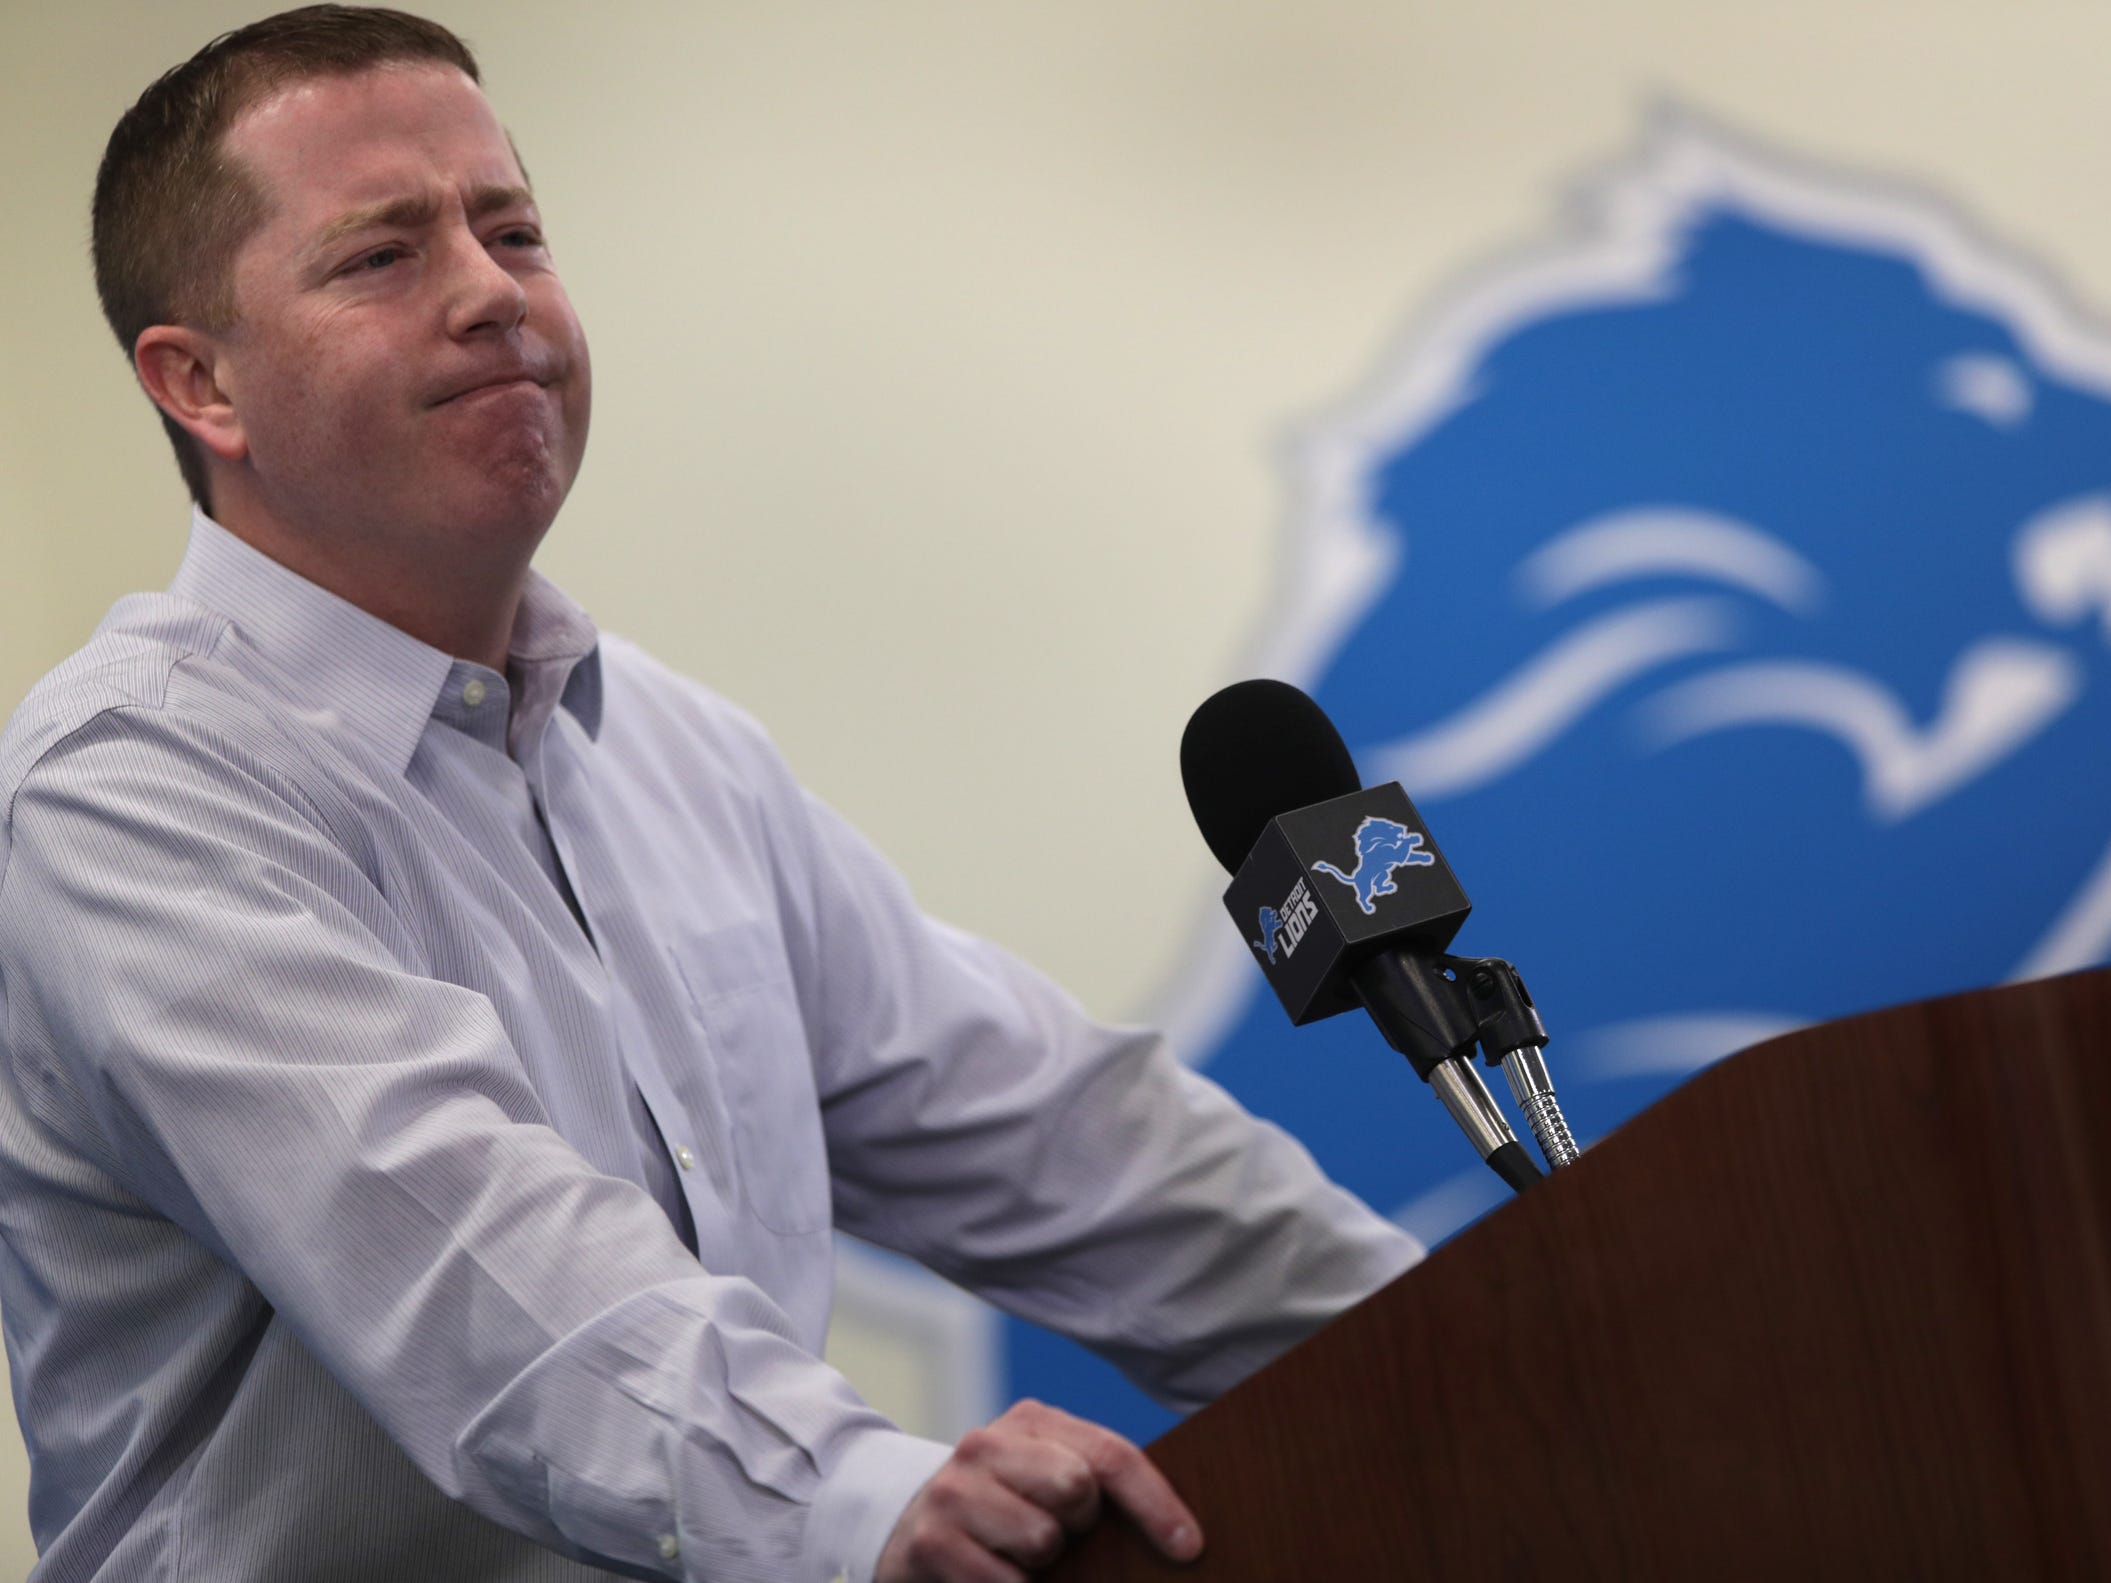 Detroit Lions general manager Bob Quinn during his news conference at the practice facility in Allen Park on Friday, Jan. 4, 2019.